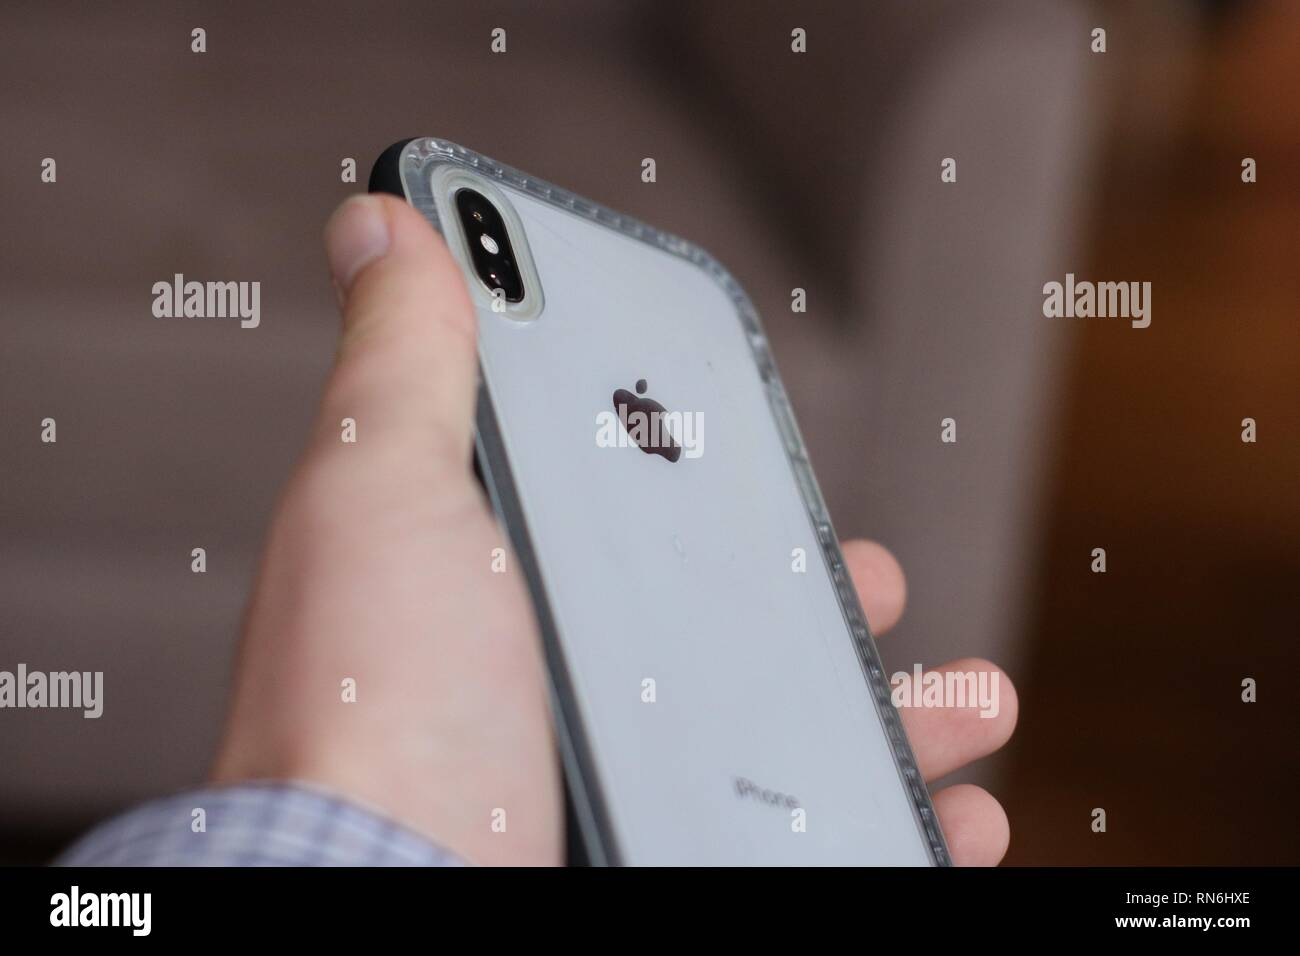 iPhone XS Max in Lifeproof case - Stock Image